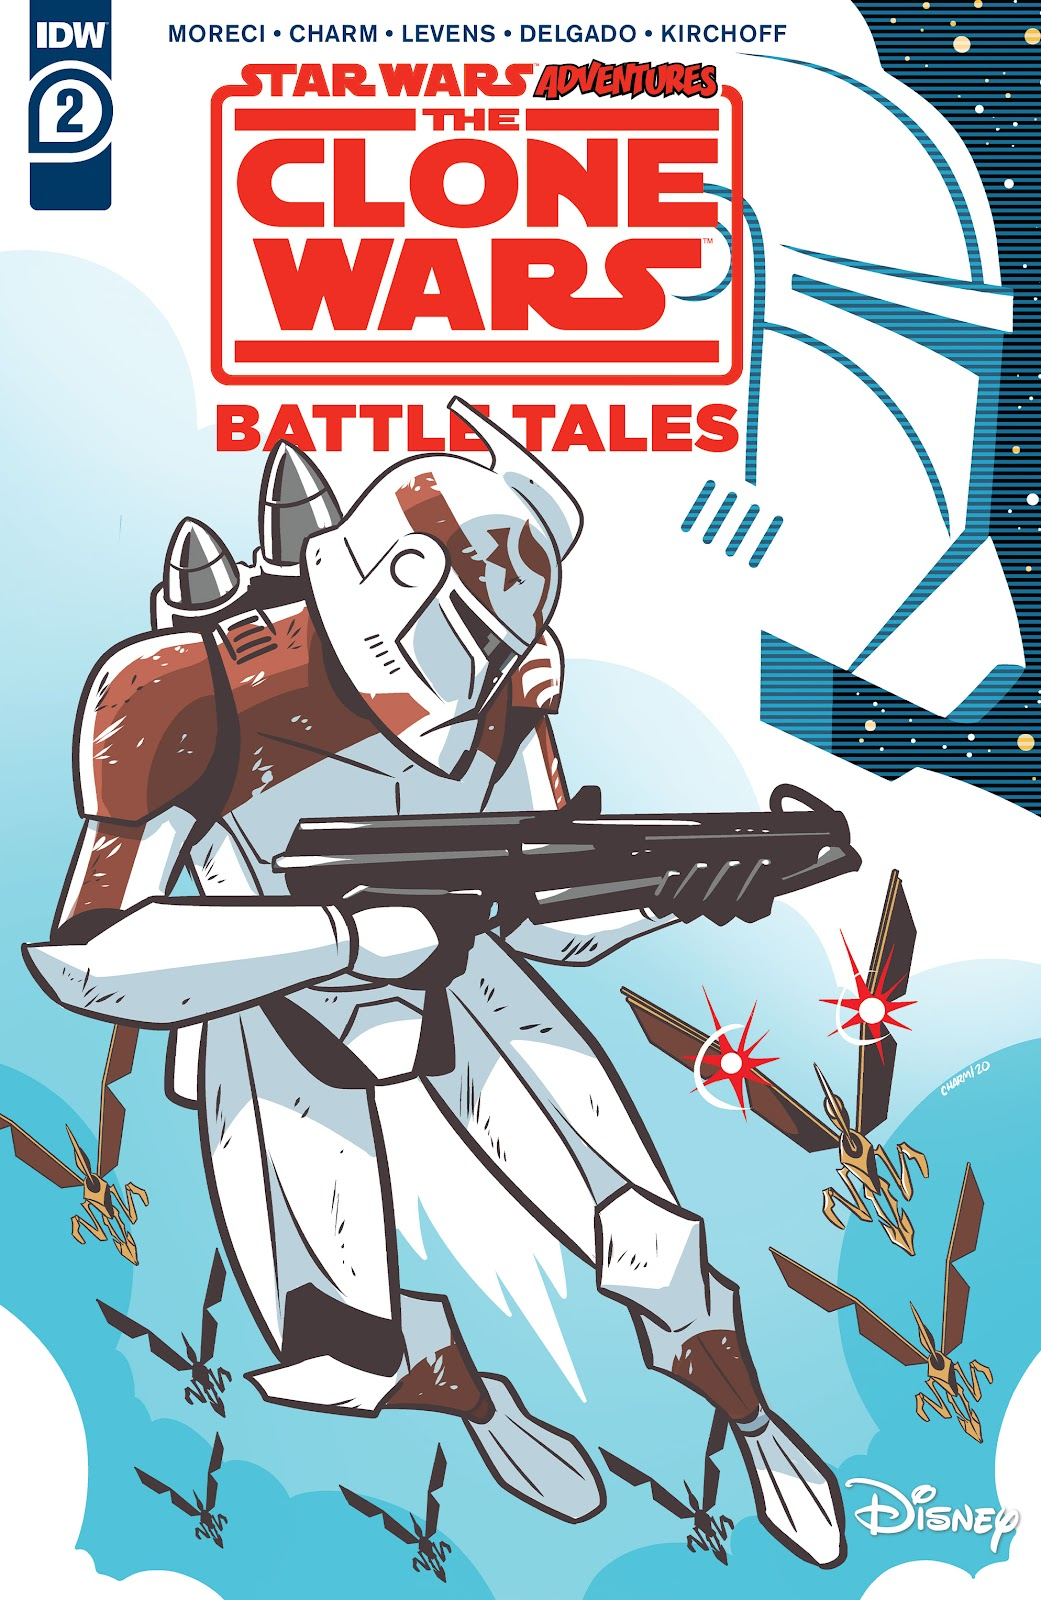 Star Wars Adventures: The Clone Wars-Battle Tales 2 Page 1